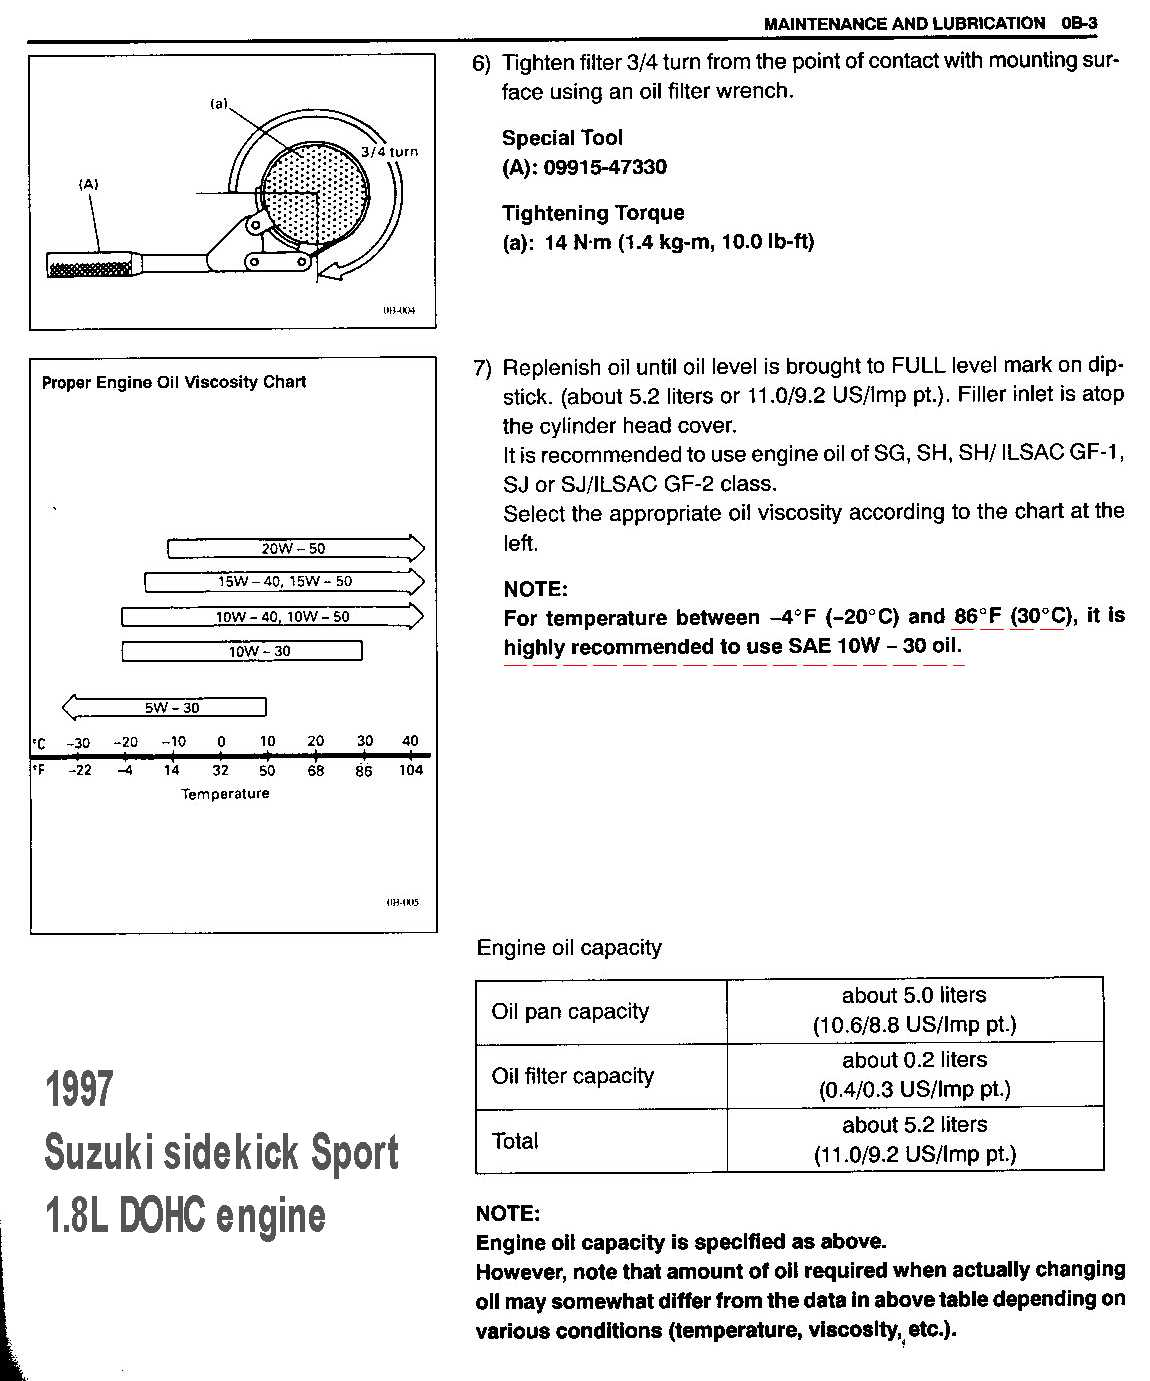 How to tune up do not run any dohc motor with thin motor oil above 86f per chart see this 1997 suzuki supplement table warnings 18l or 20l nvjuhfo Image collections